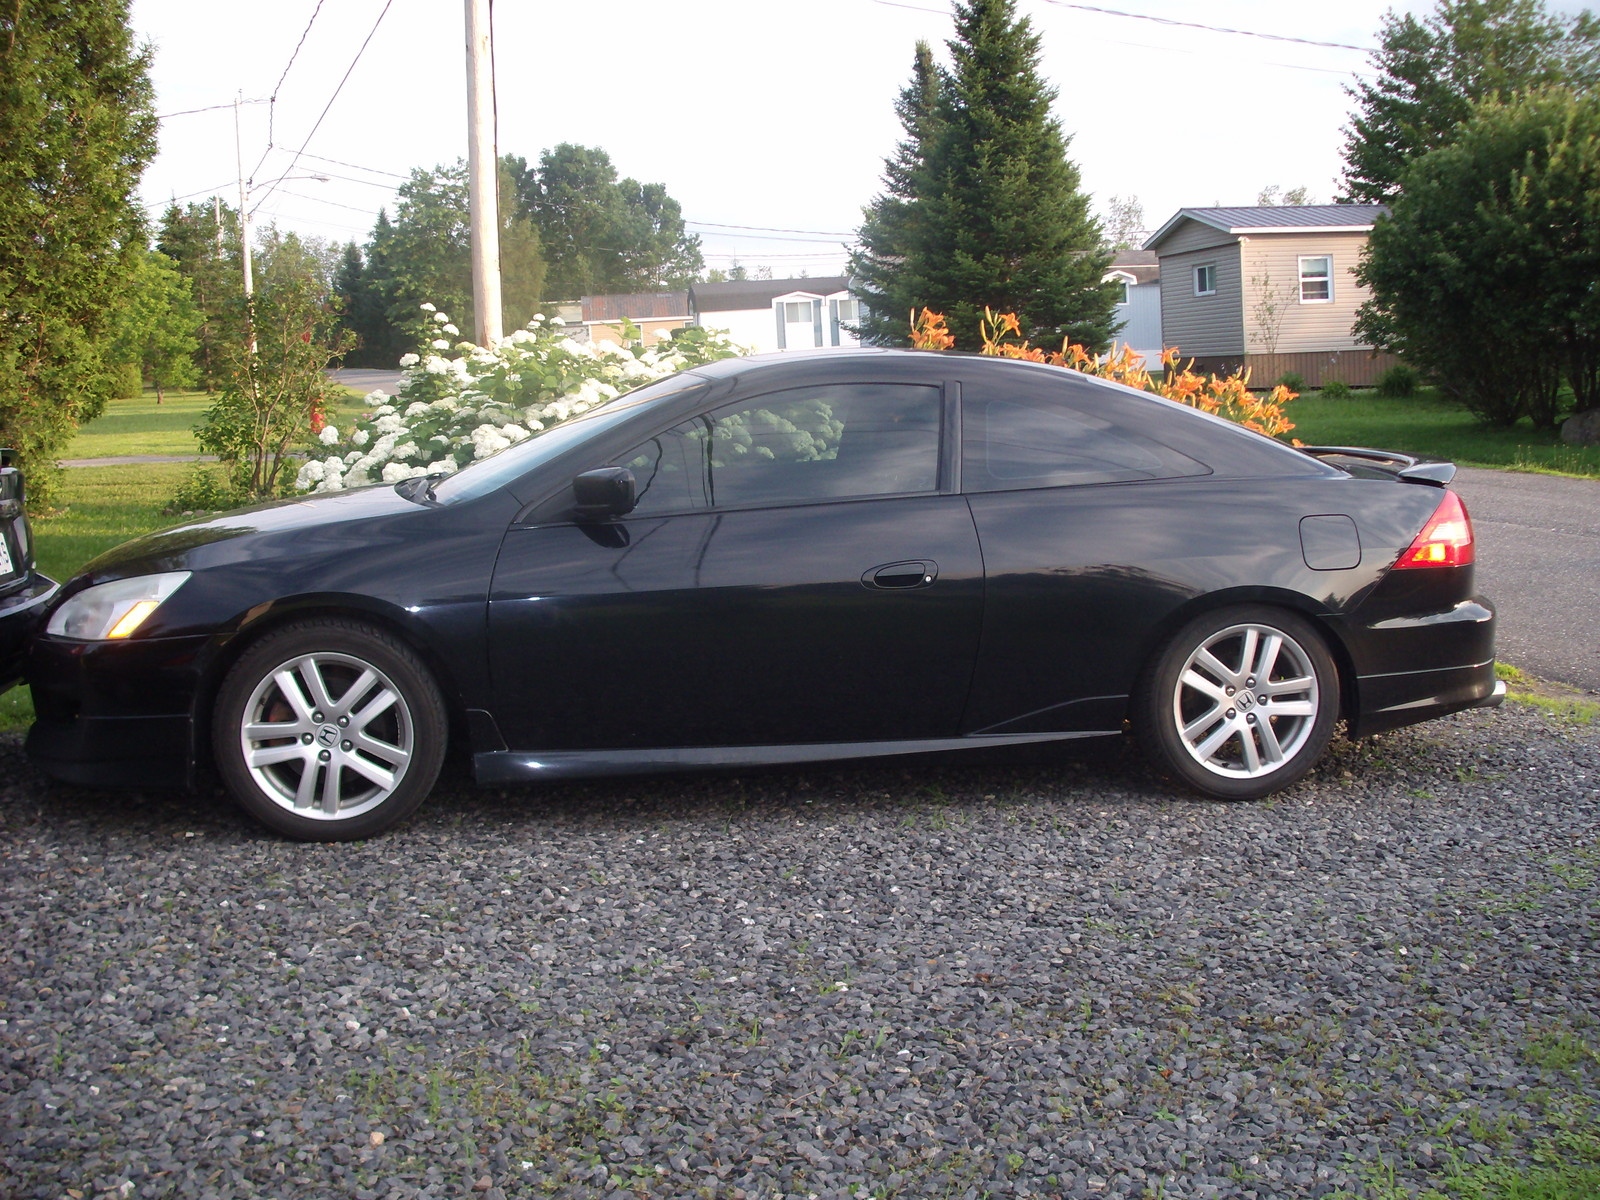 2005 Honda Accord Ex Coupe V6 6 Speed 1 4 Mile Drag Racing